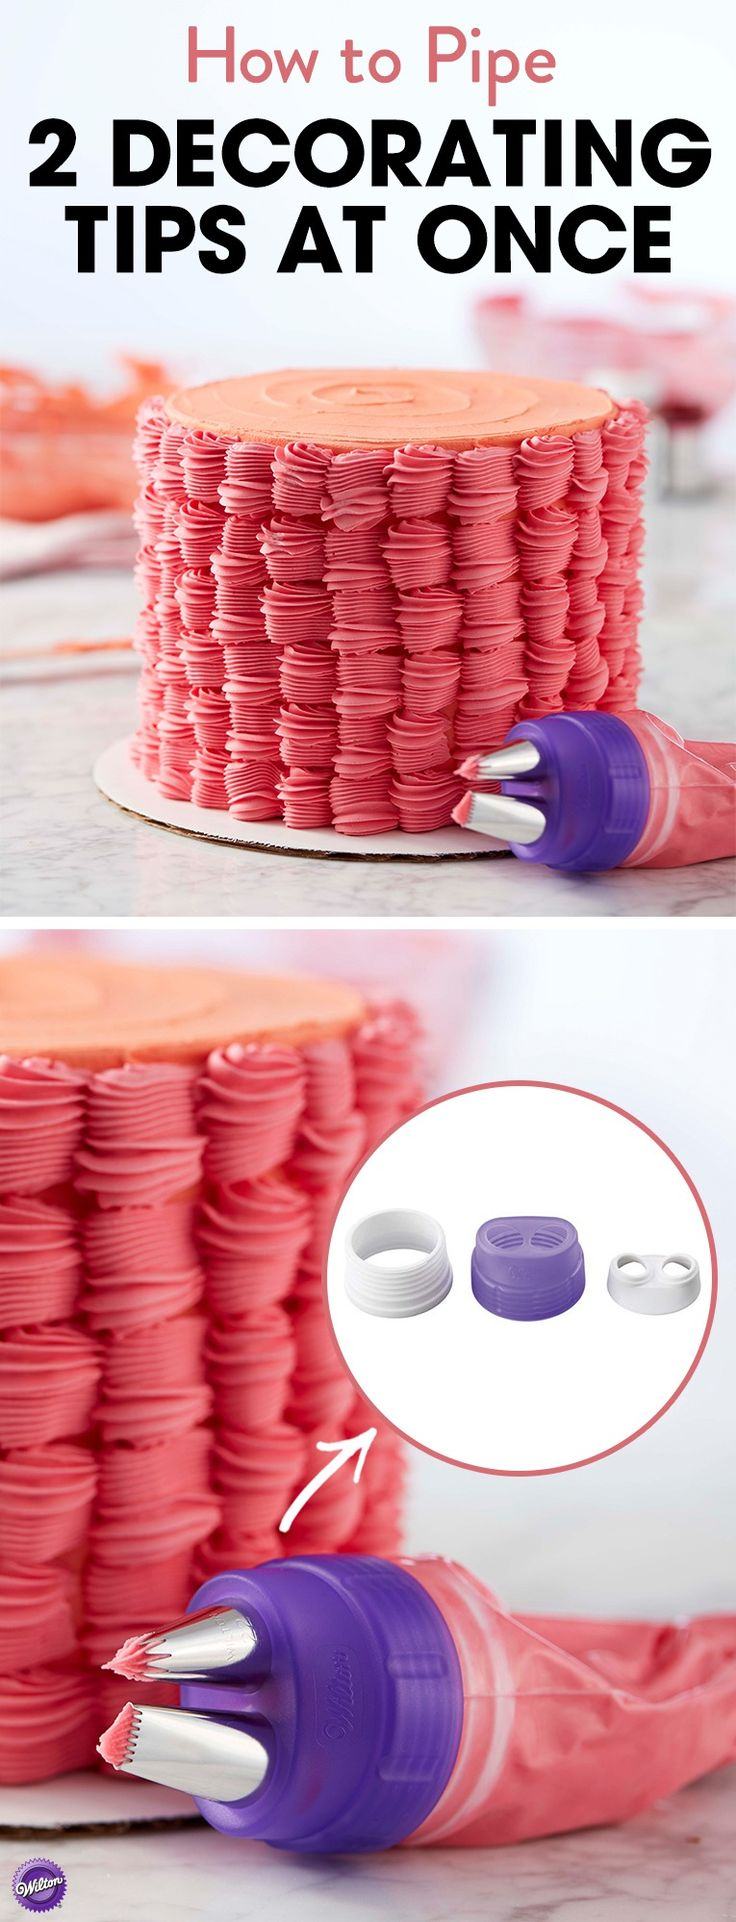 Wilton Cake Decorating Bags Tips : 25+ basta Wilton tips ideerna pa Pinterest ...